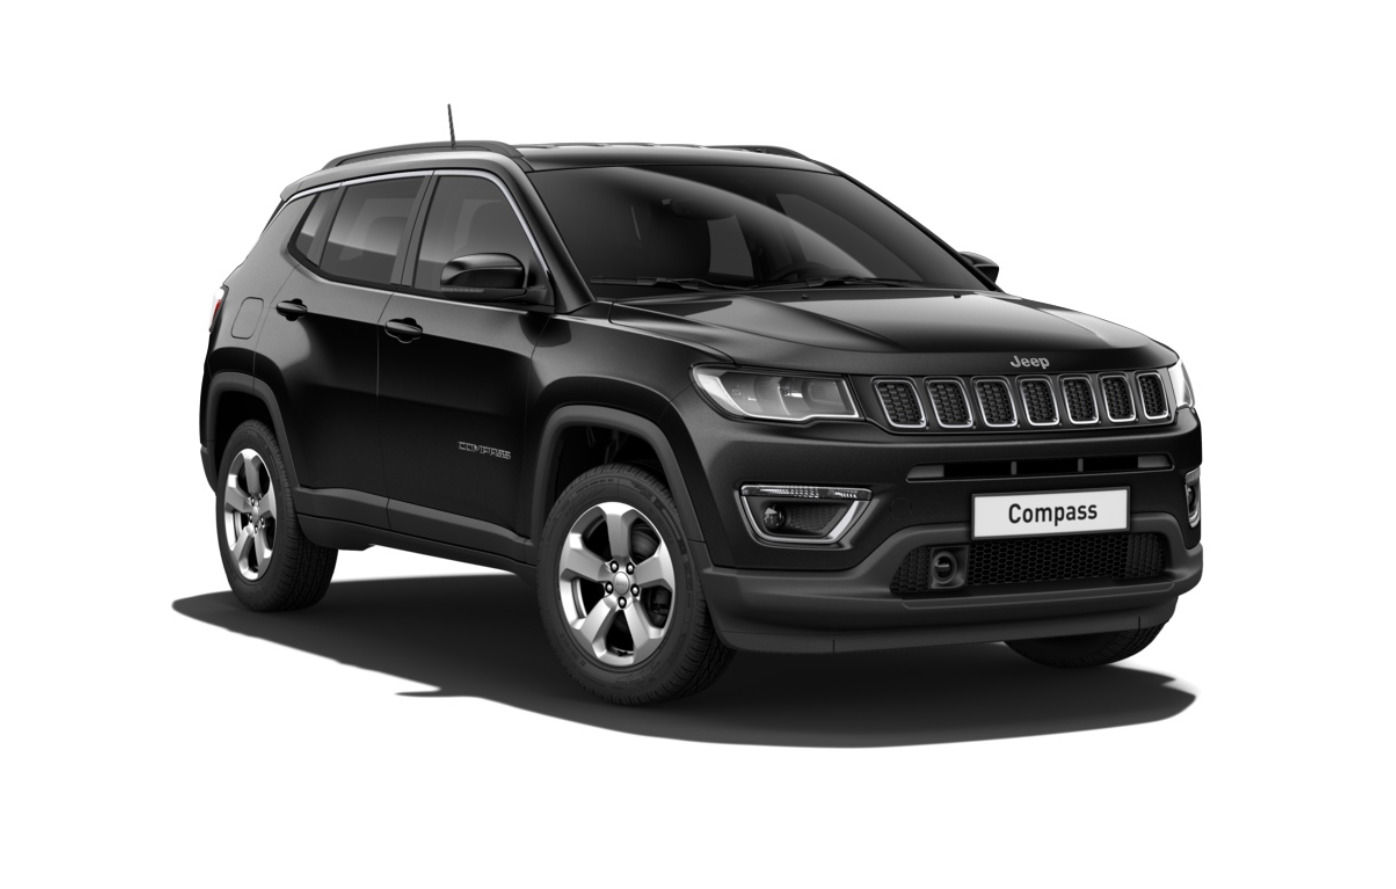 Jeep Compass 2.0 Multijet 140 Longitude 5dr